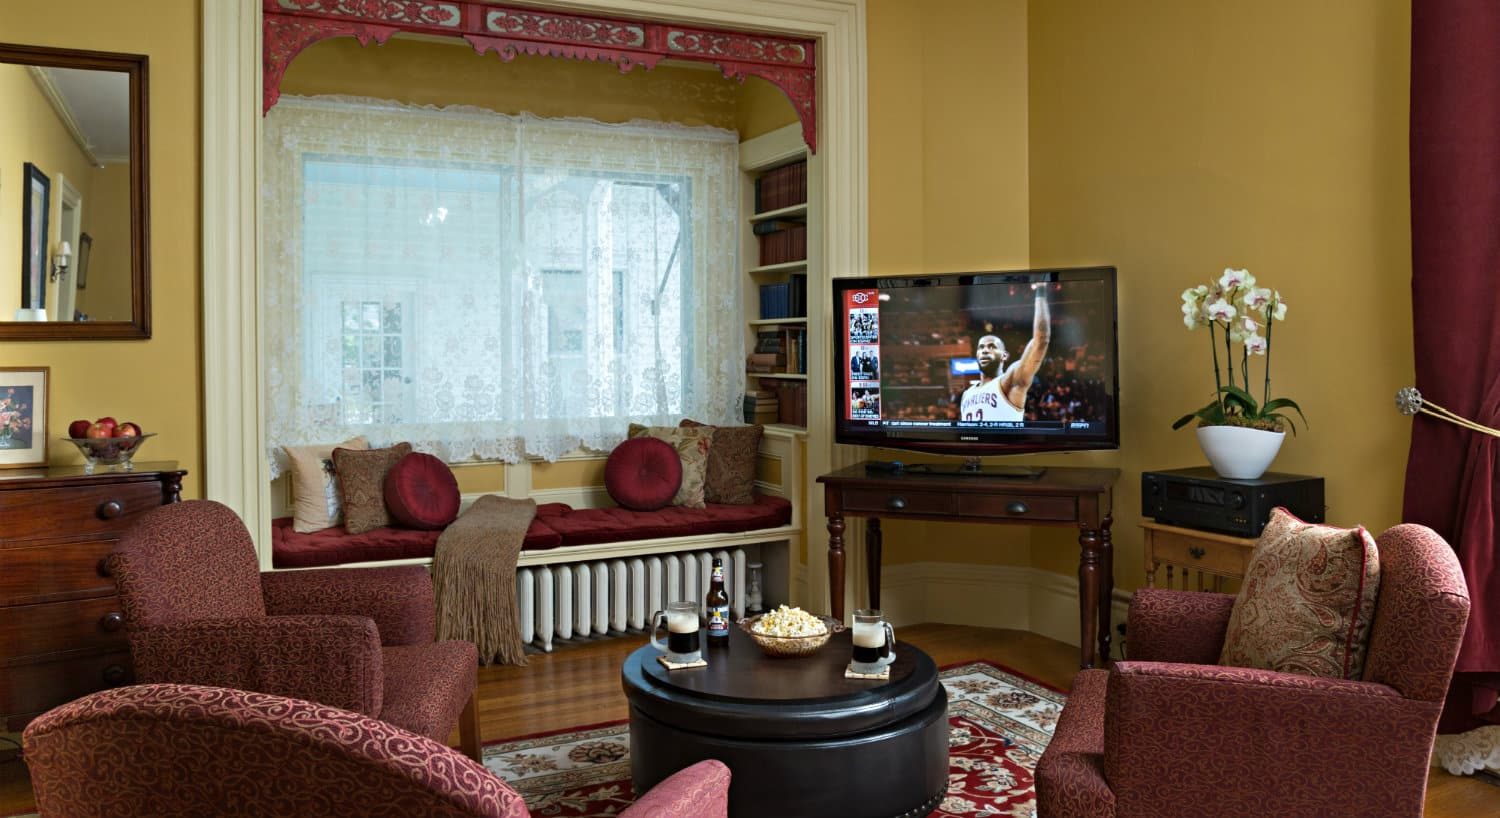 A TV in the corner of a parlor with rose colored chairs surrounded for viewing.